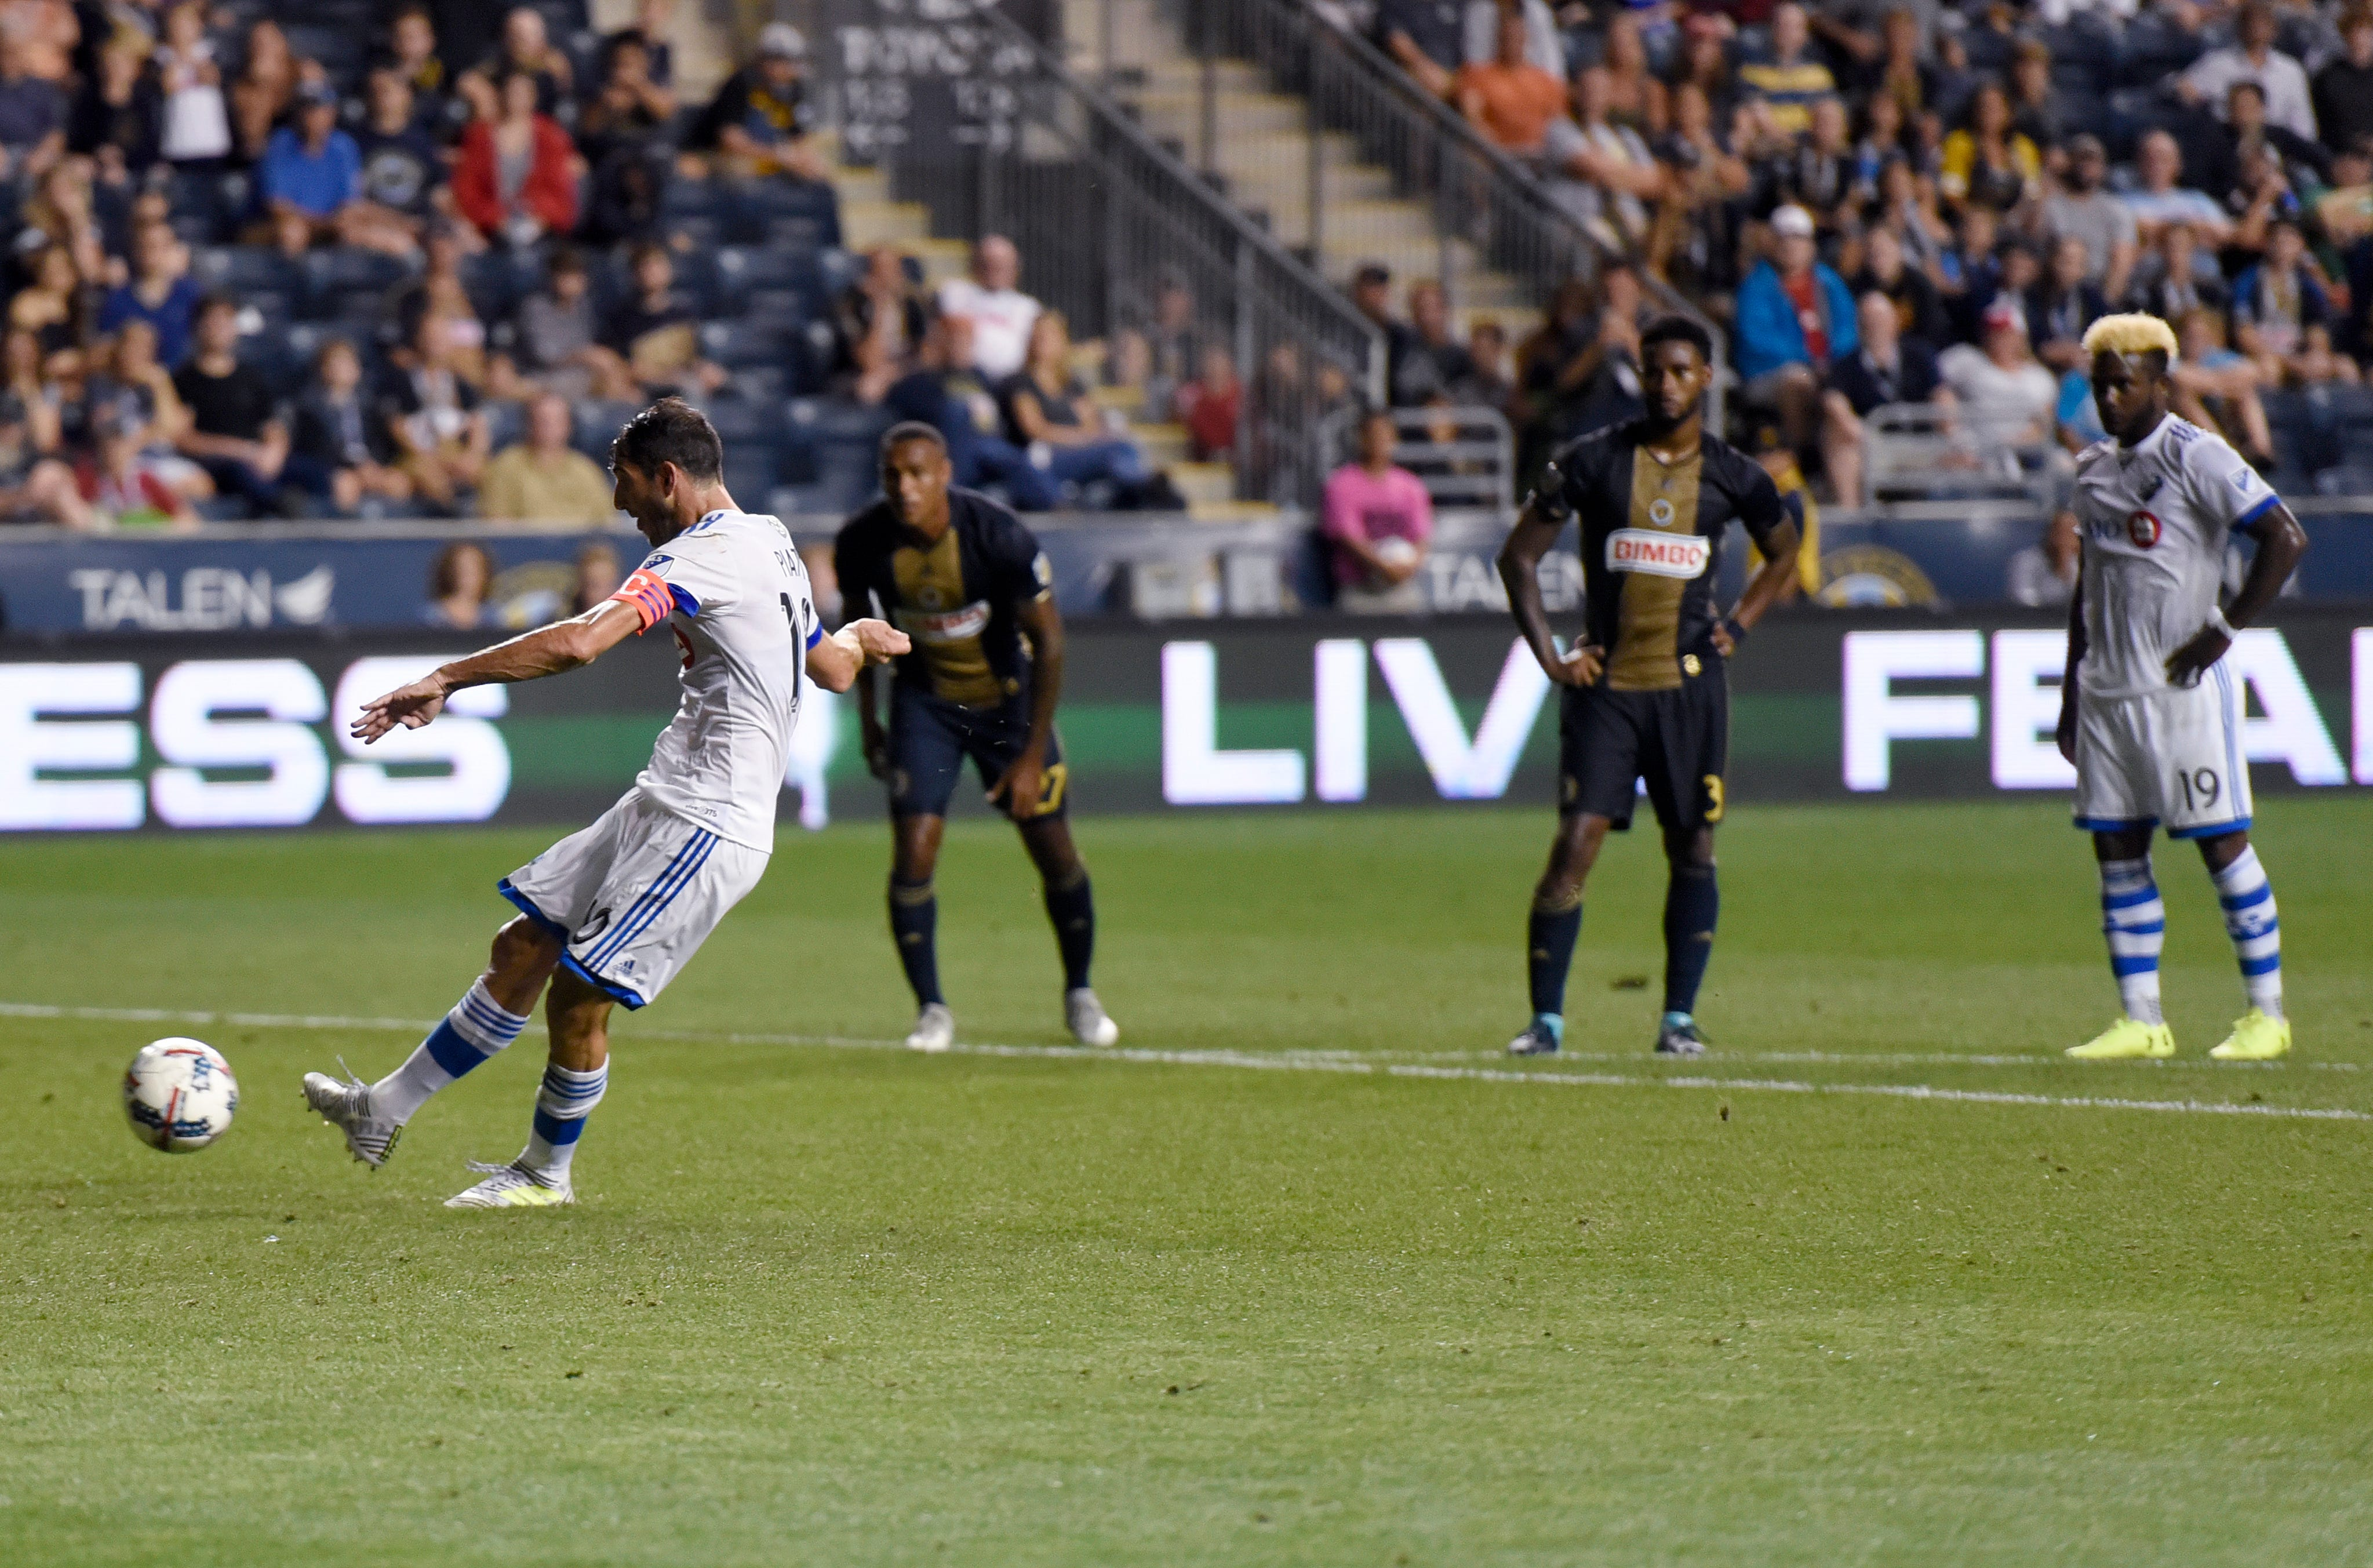 Dzemaili leads Impact to 3-0 win over Union